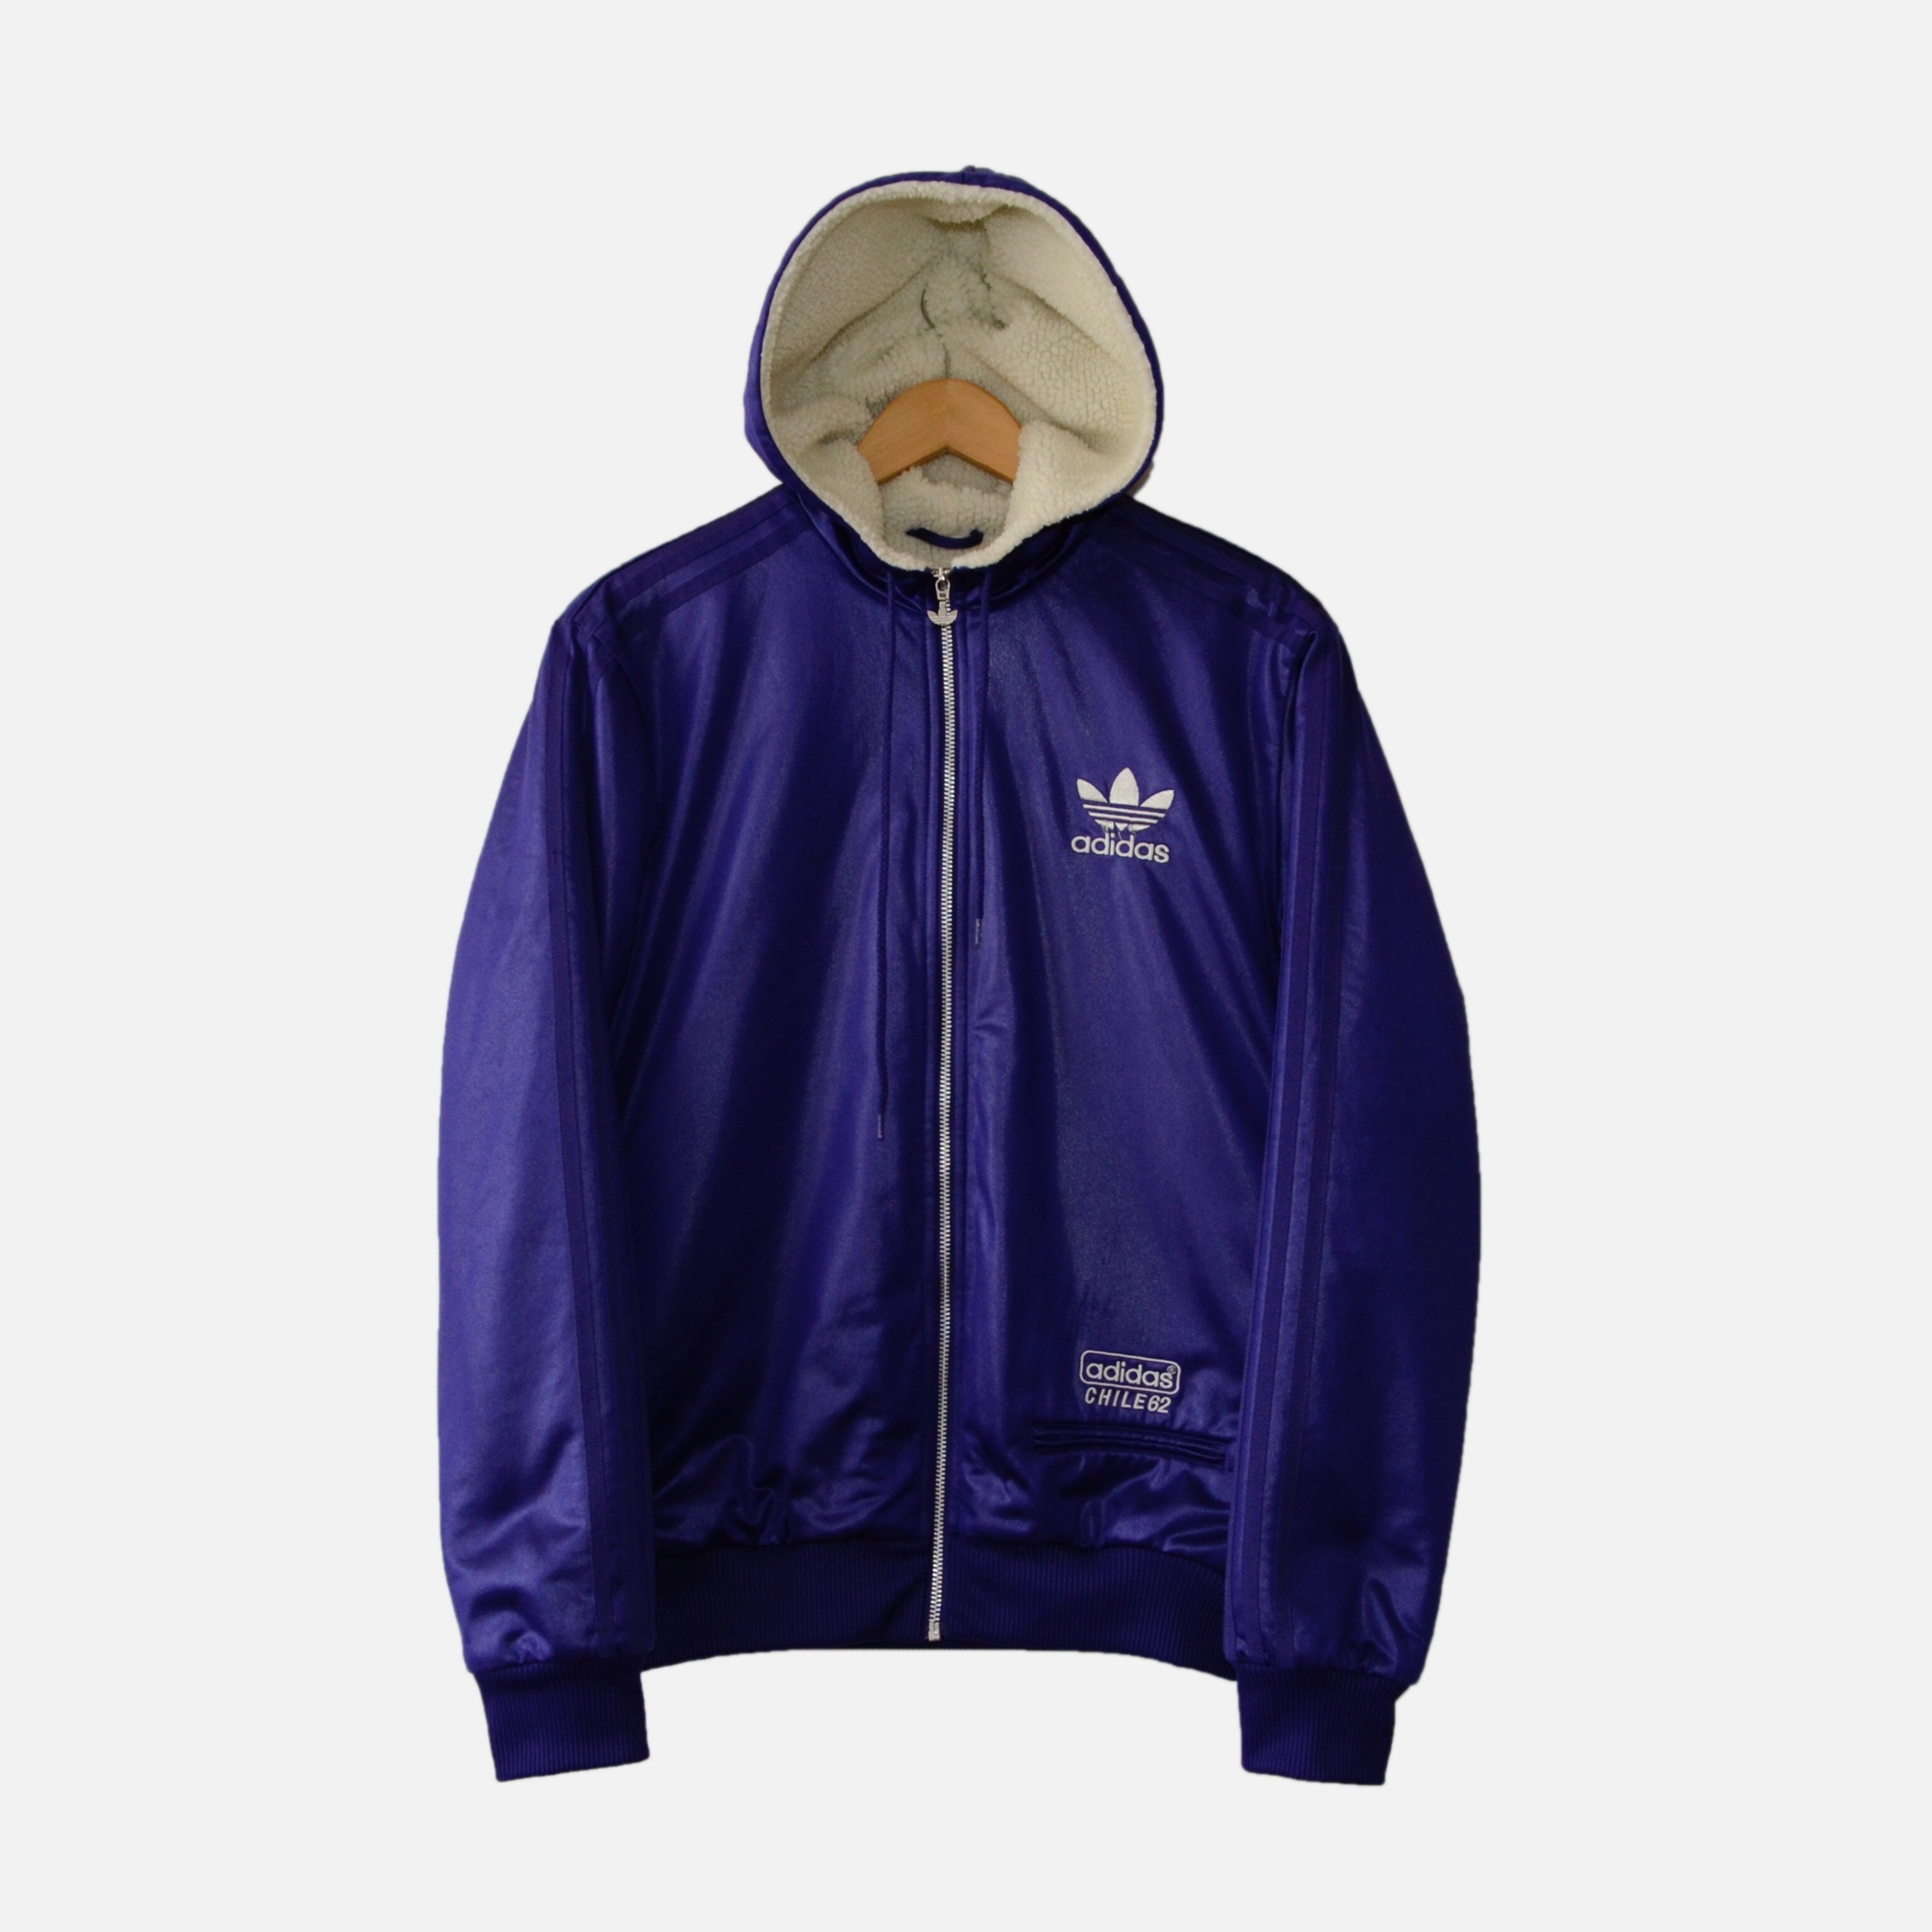 adidas fleece bomber jacket